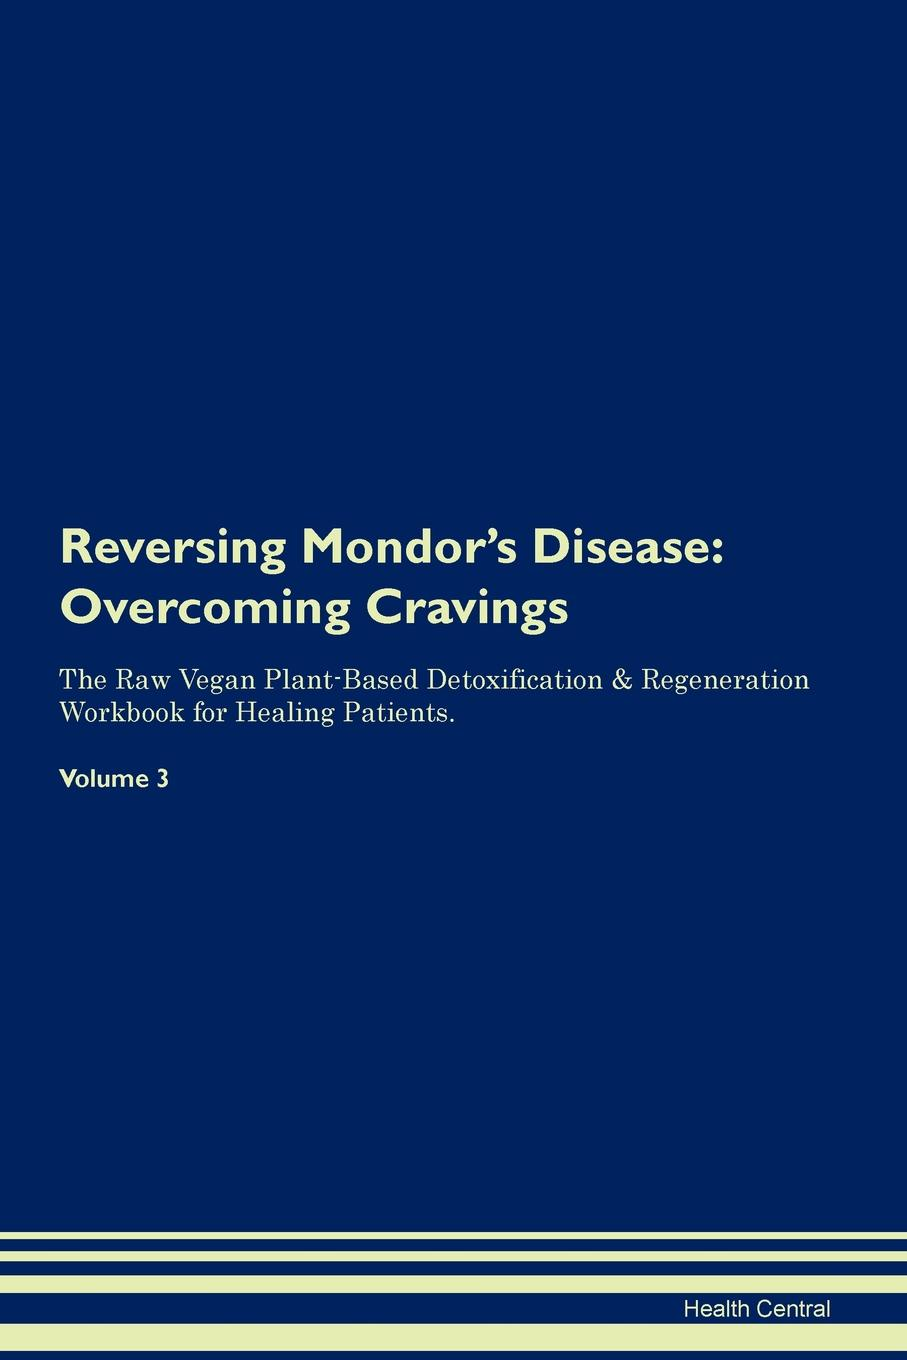 Фото - Health Central Reversing Mondor's Disease. Overcoming Cravings The Raw Vegan Plant-Based Detoxification & Regeneration Workbook for Healing Patients. Volume 3 health central reversing extramammary paget s disease overcoming cravings the raw vegan plant based detoxification regeneration workbook for healing patients volume 3